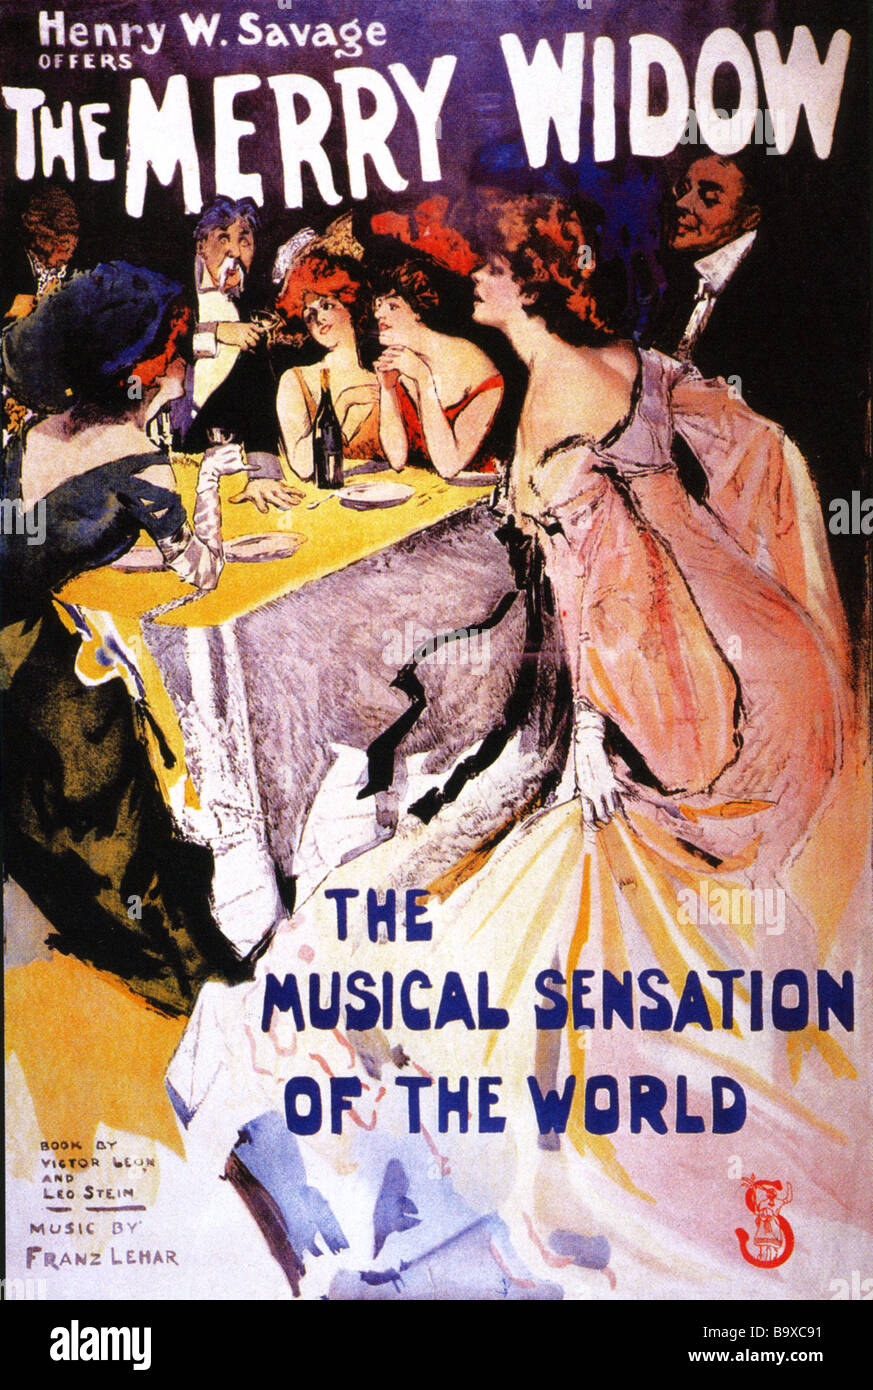 THE MERRY WIDOW Poster for the Broadway production which opened on 21 October 1907 - Stock Image